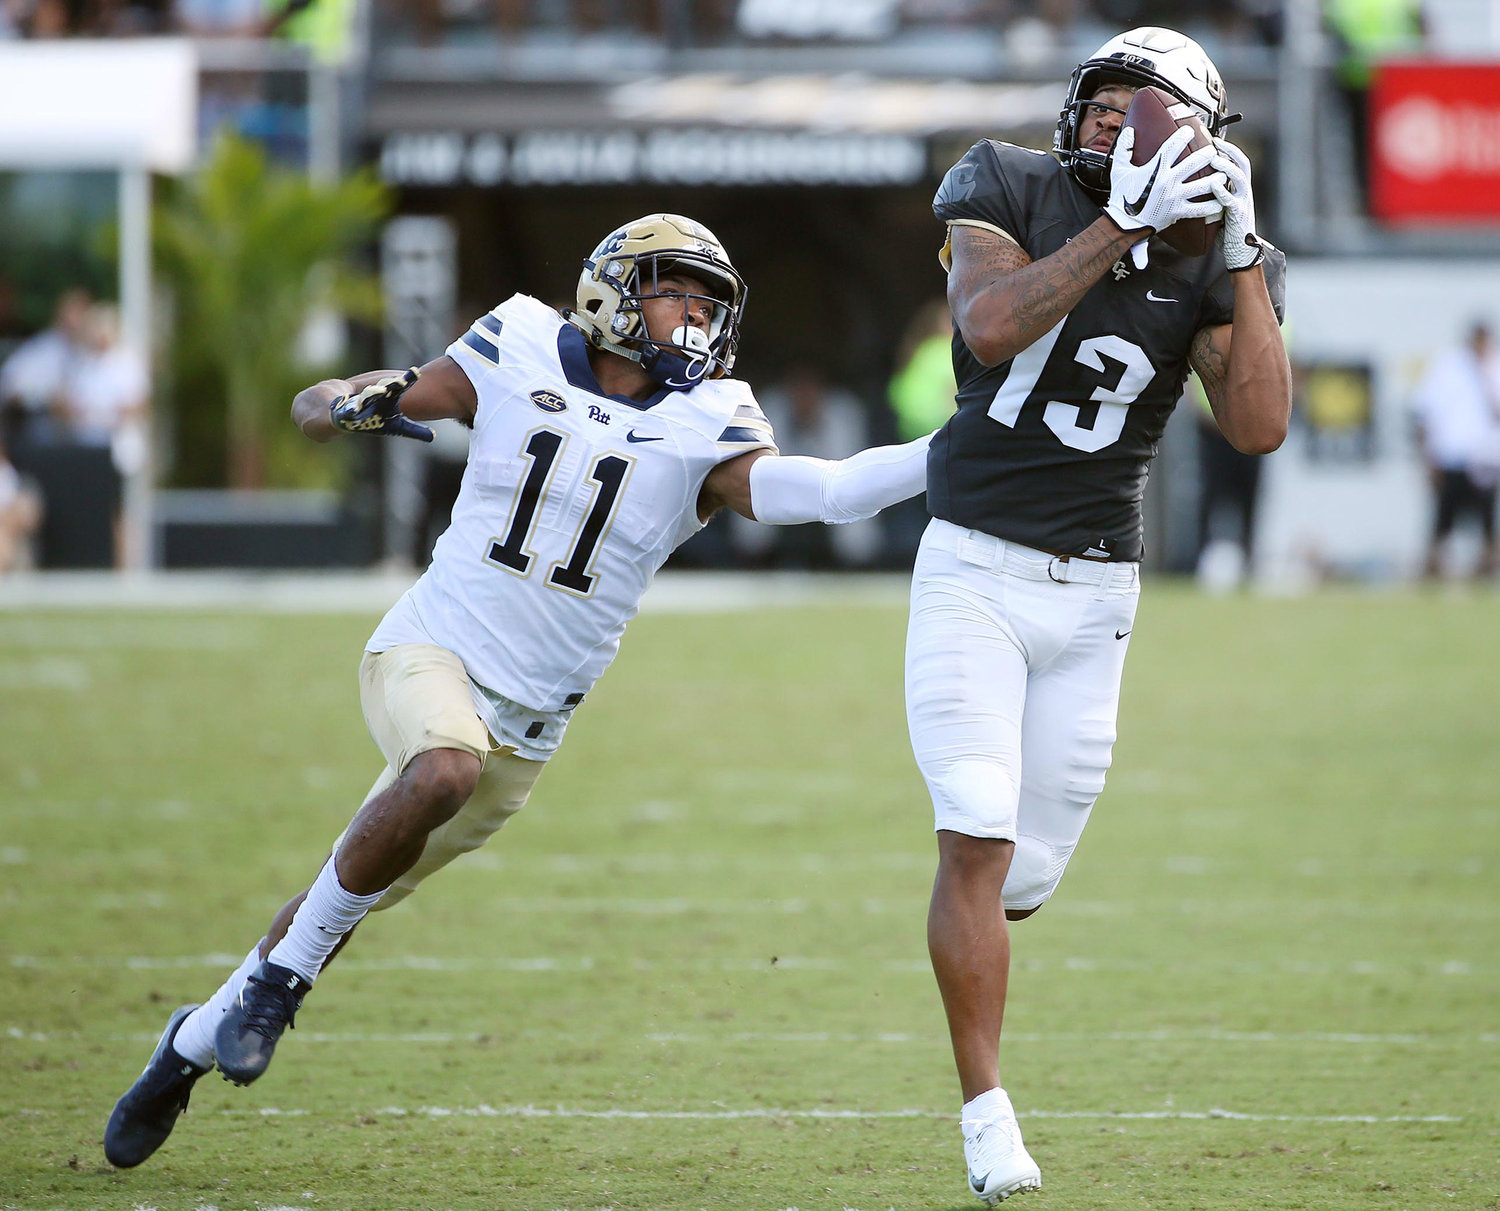 UCF wide receiver Gabriel Davis (13) catches a pass in front of Pitt defensive back Dane Jackson (11) at Spectrum Stadium in Orlando, Fla., on Saturday, Sept. 29, 2018. UCF won, 45-14.